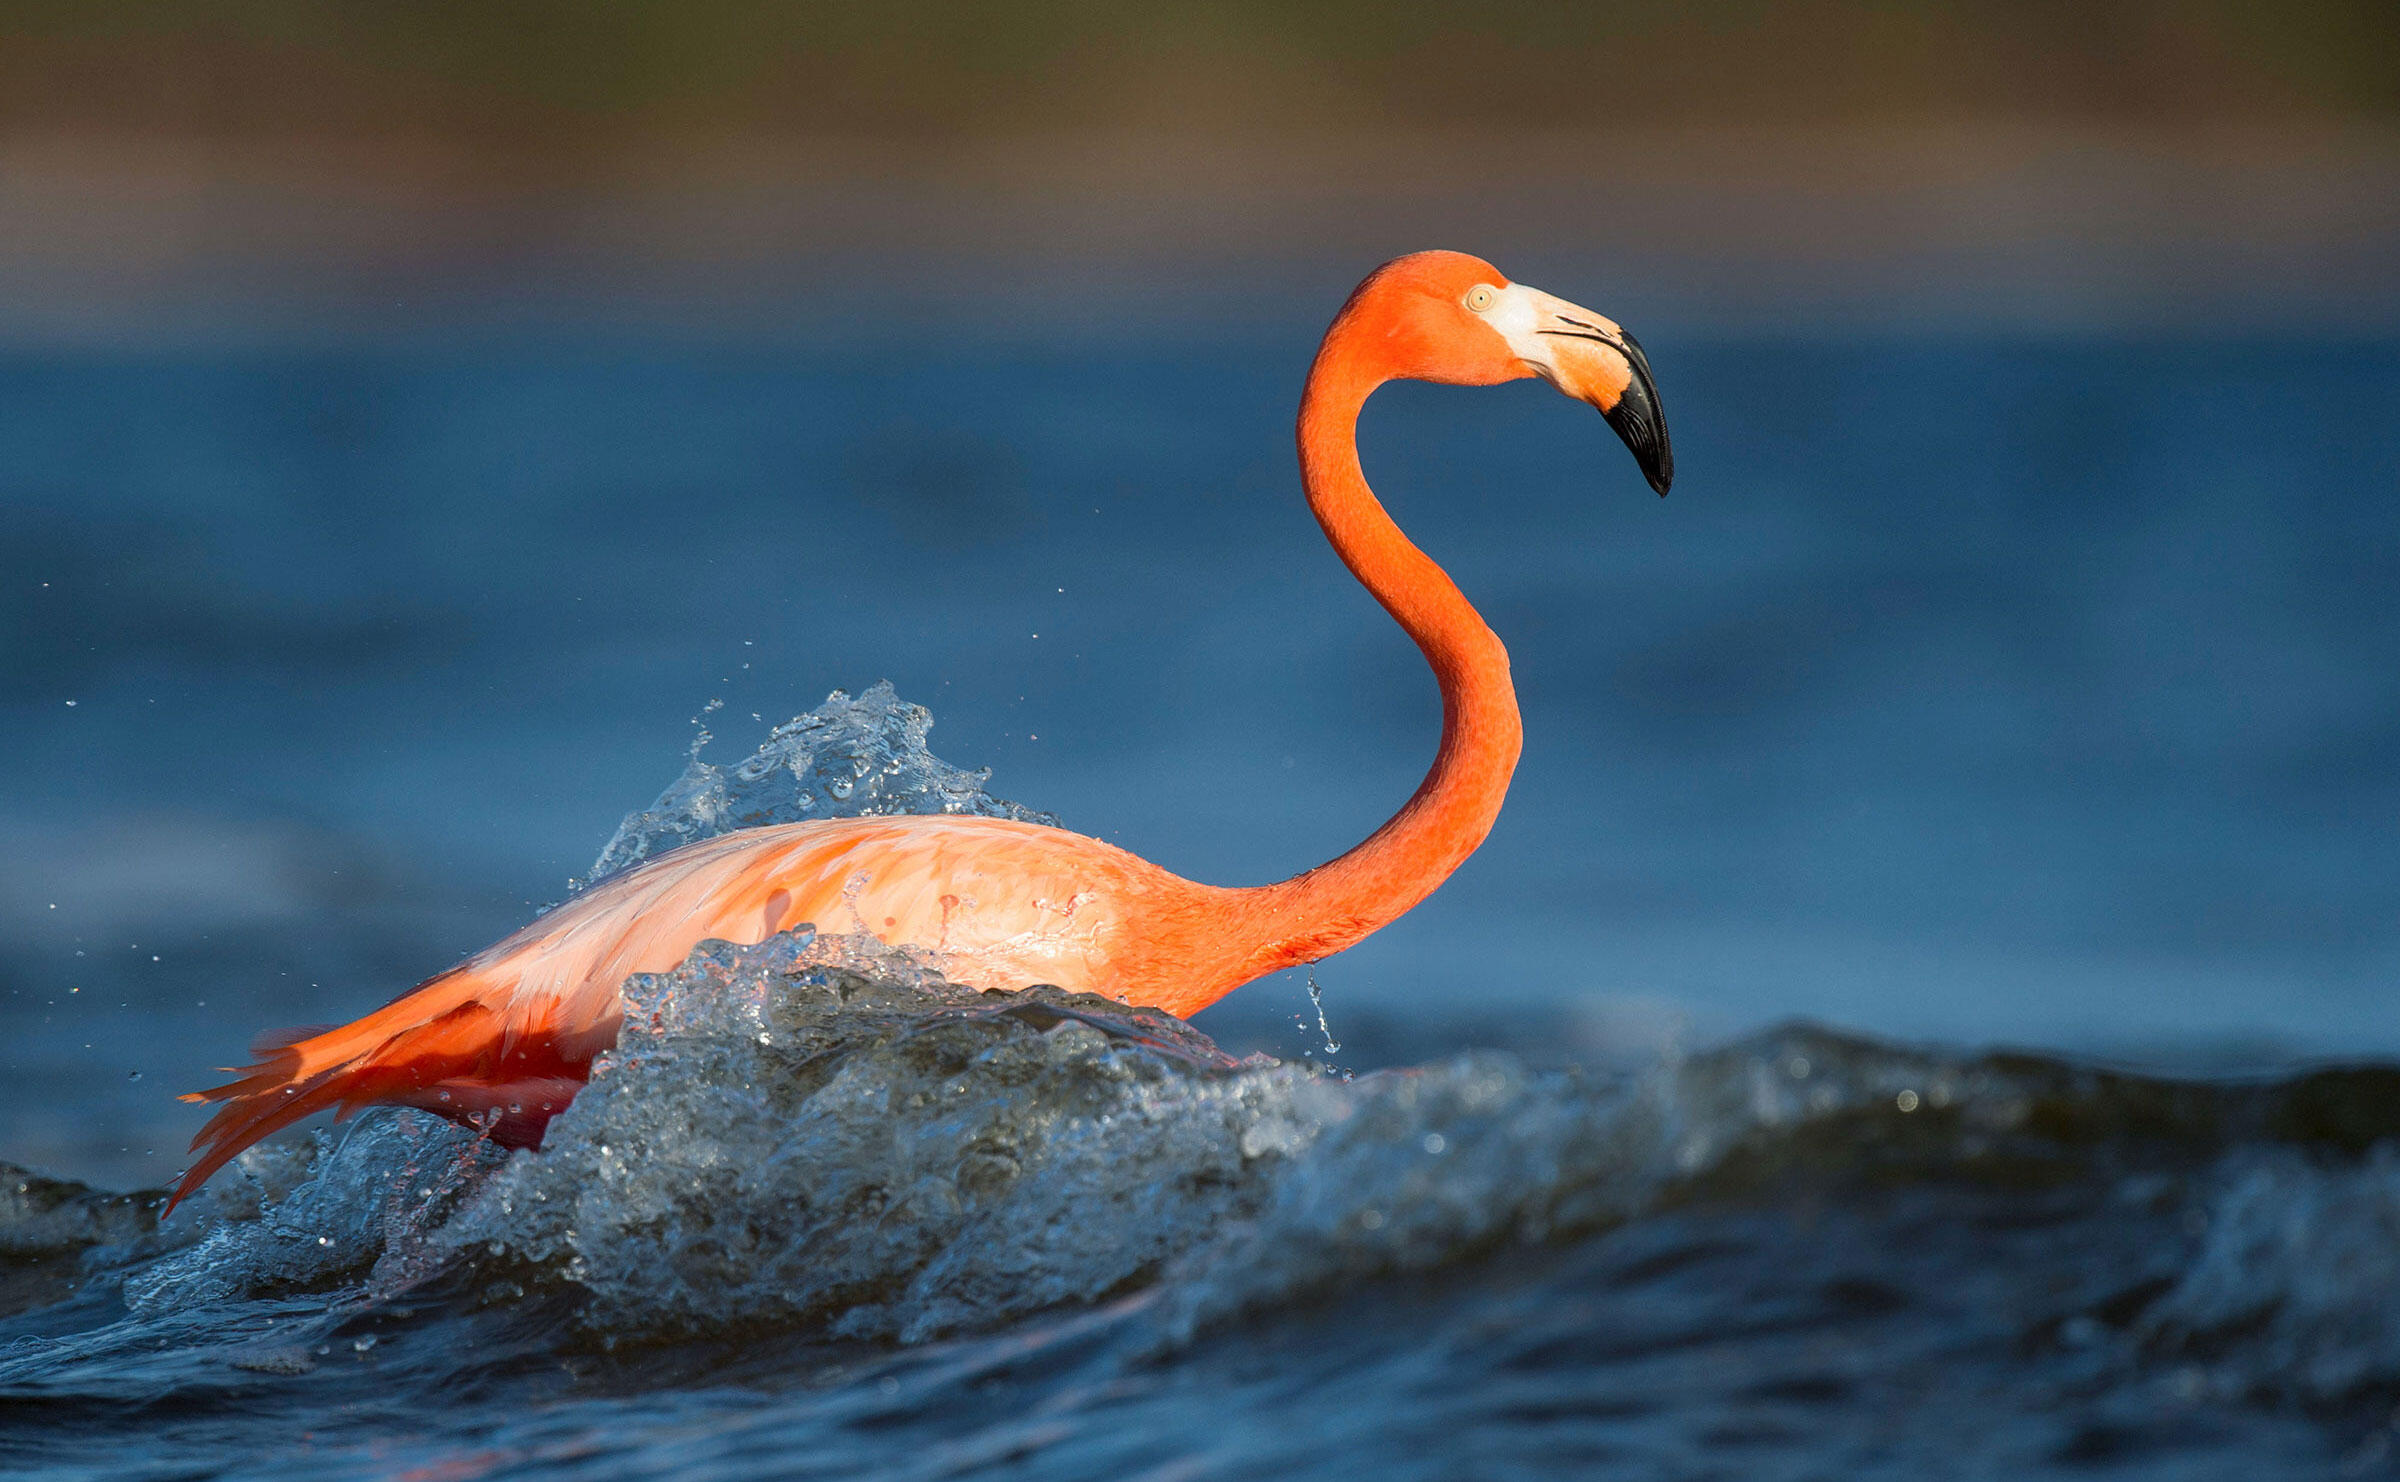 An American Flamingo in its very natural element in Florida. Raymond Hennessy/Alamy